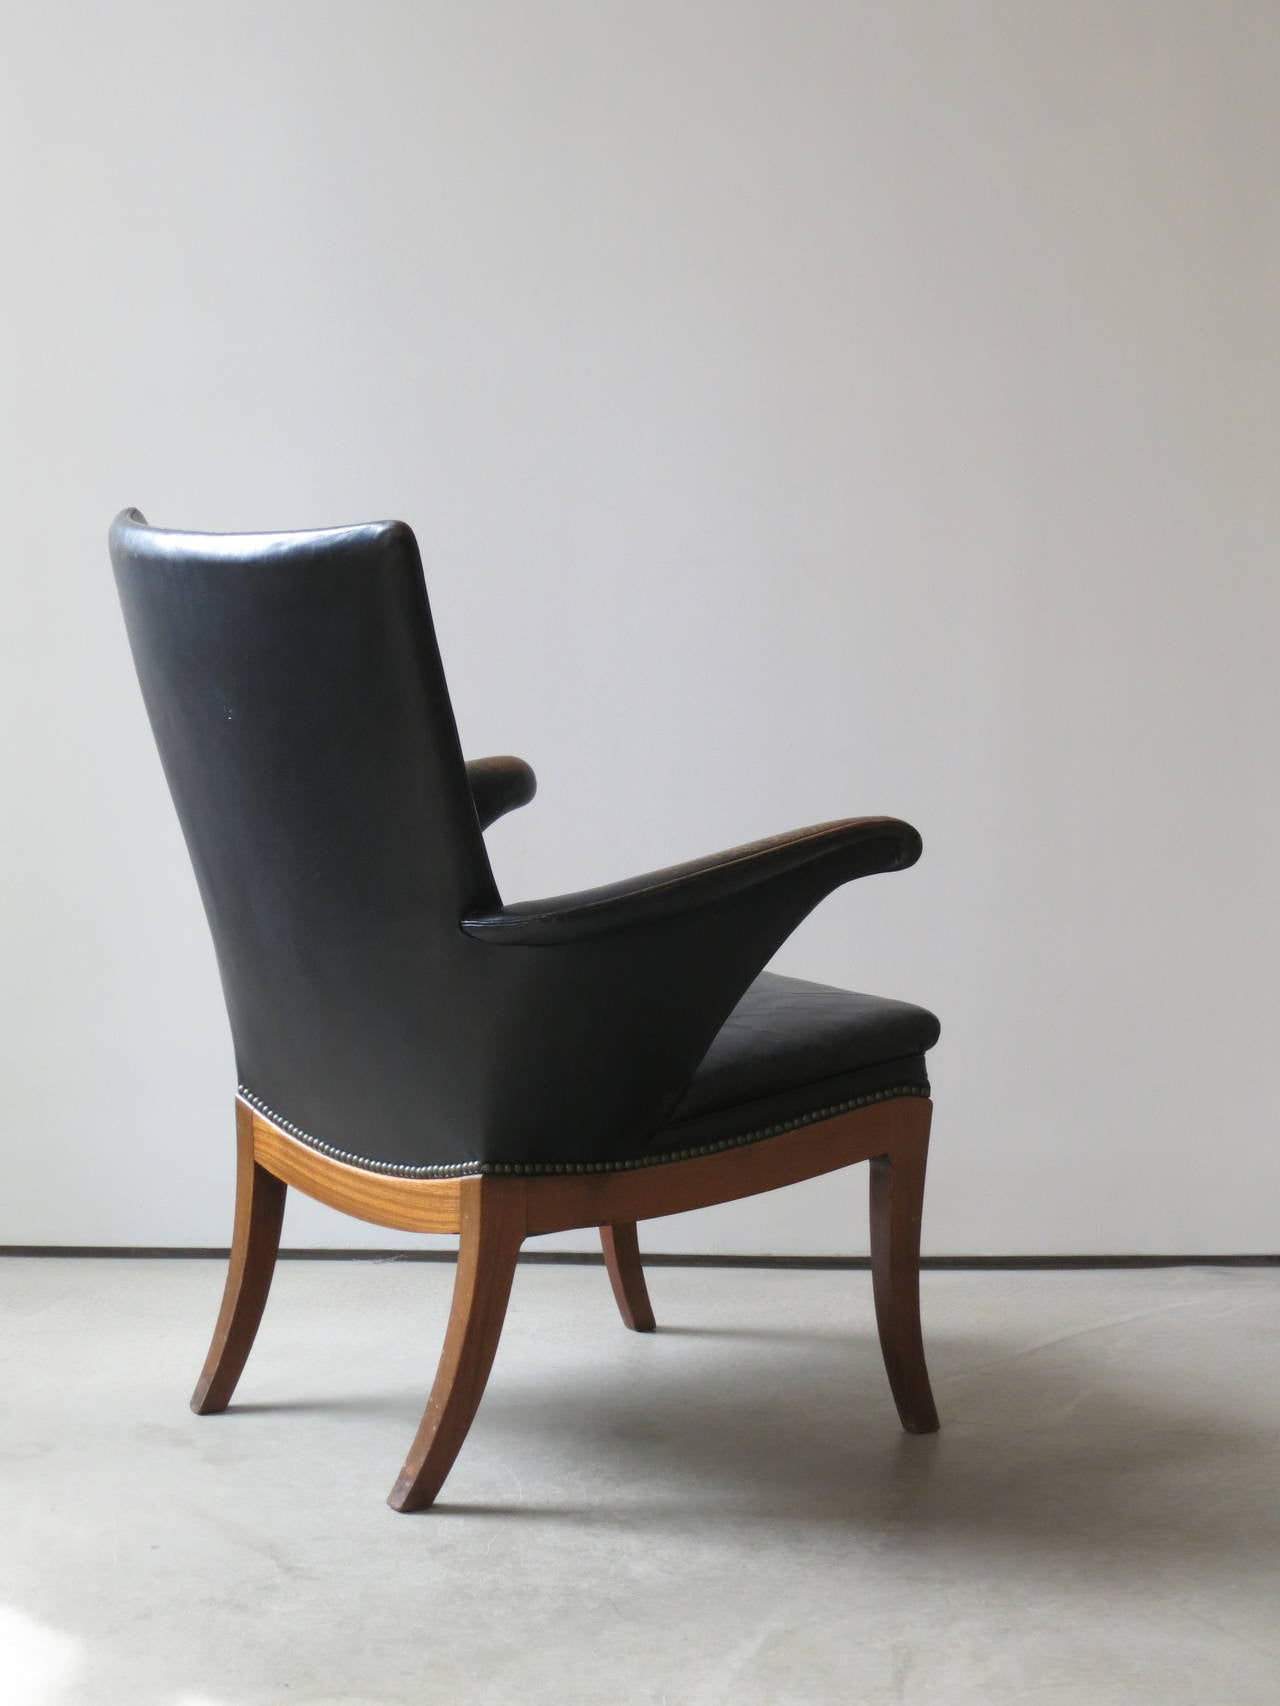 Scandinavian Modern Armchair in Original Black-Brown Leather by Frits Henningsen, 1930s For Sale